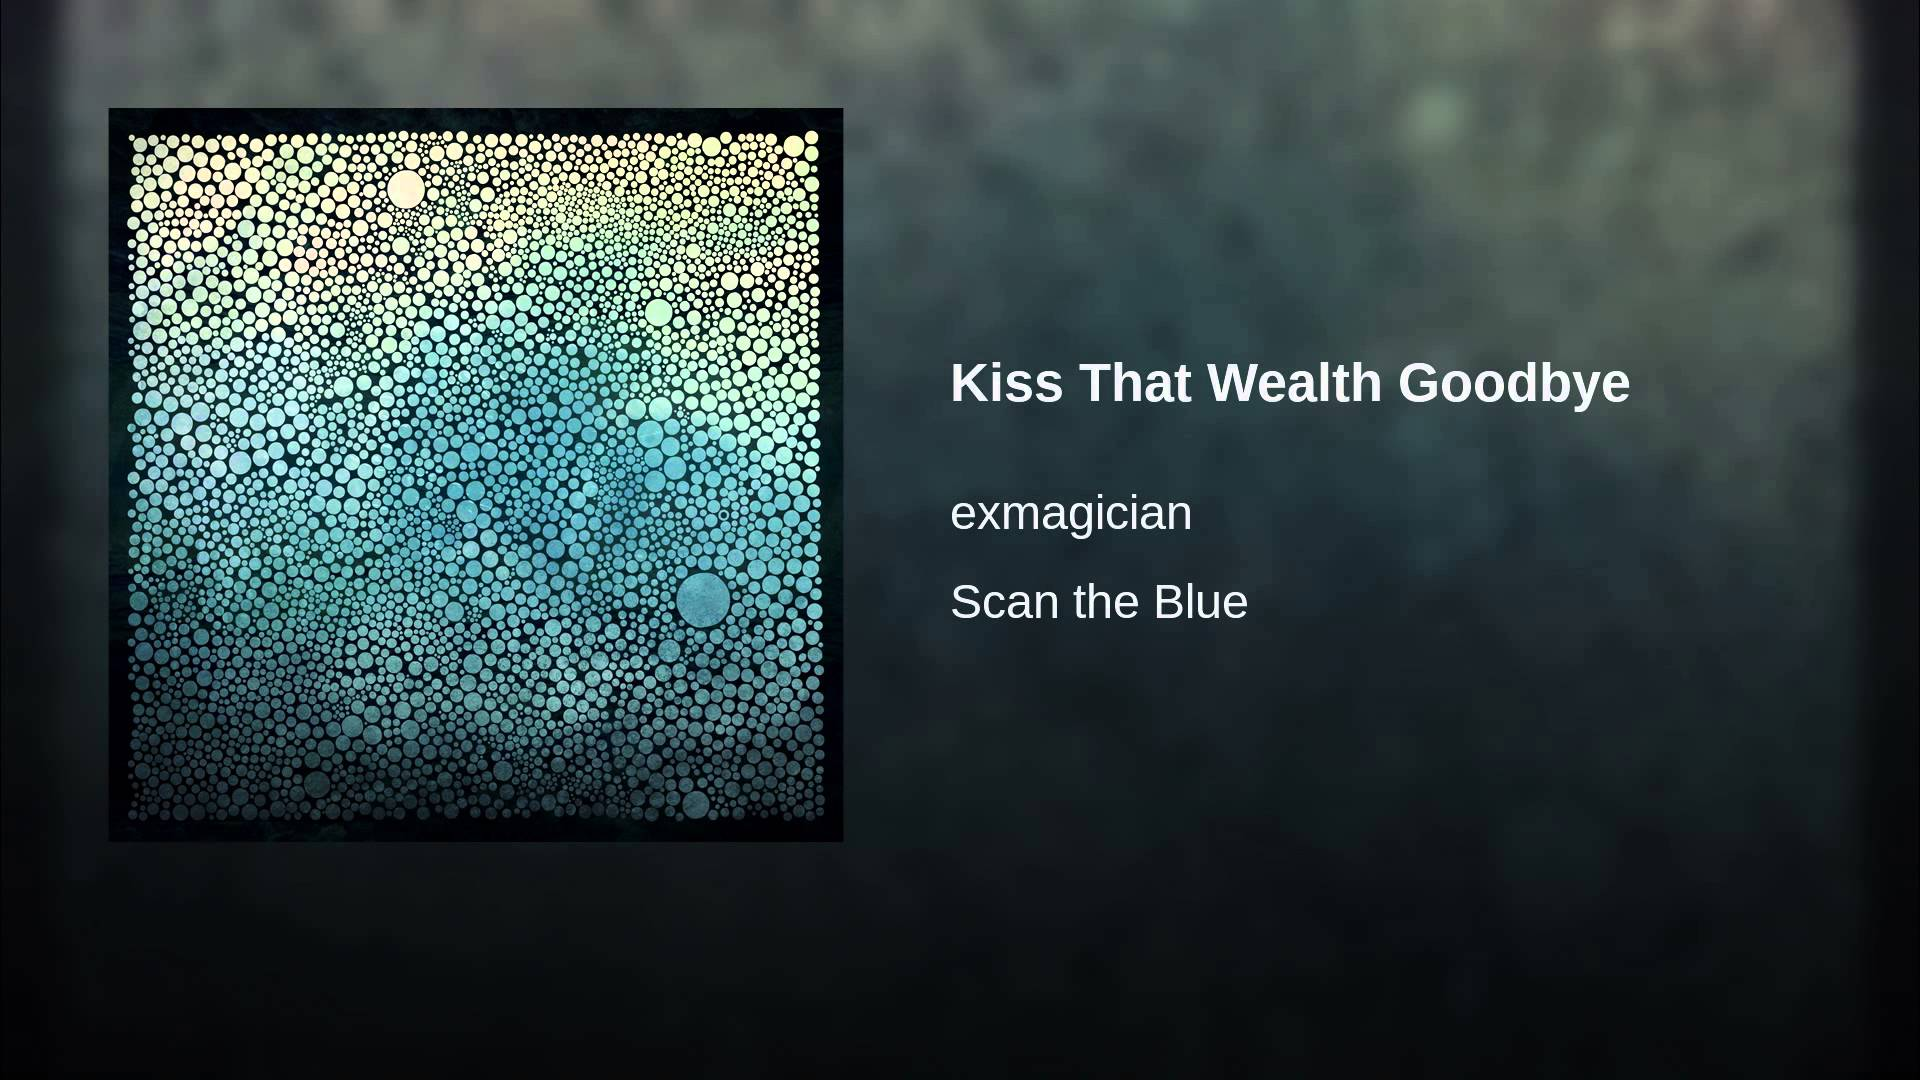 exmagician – Kiss That Wealth Goodbye